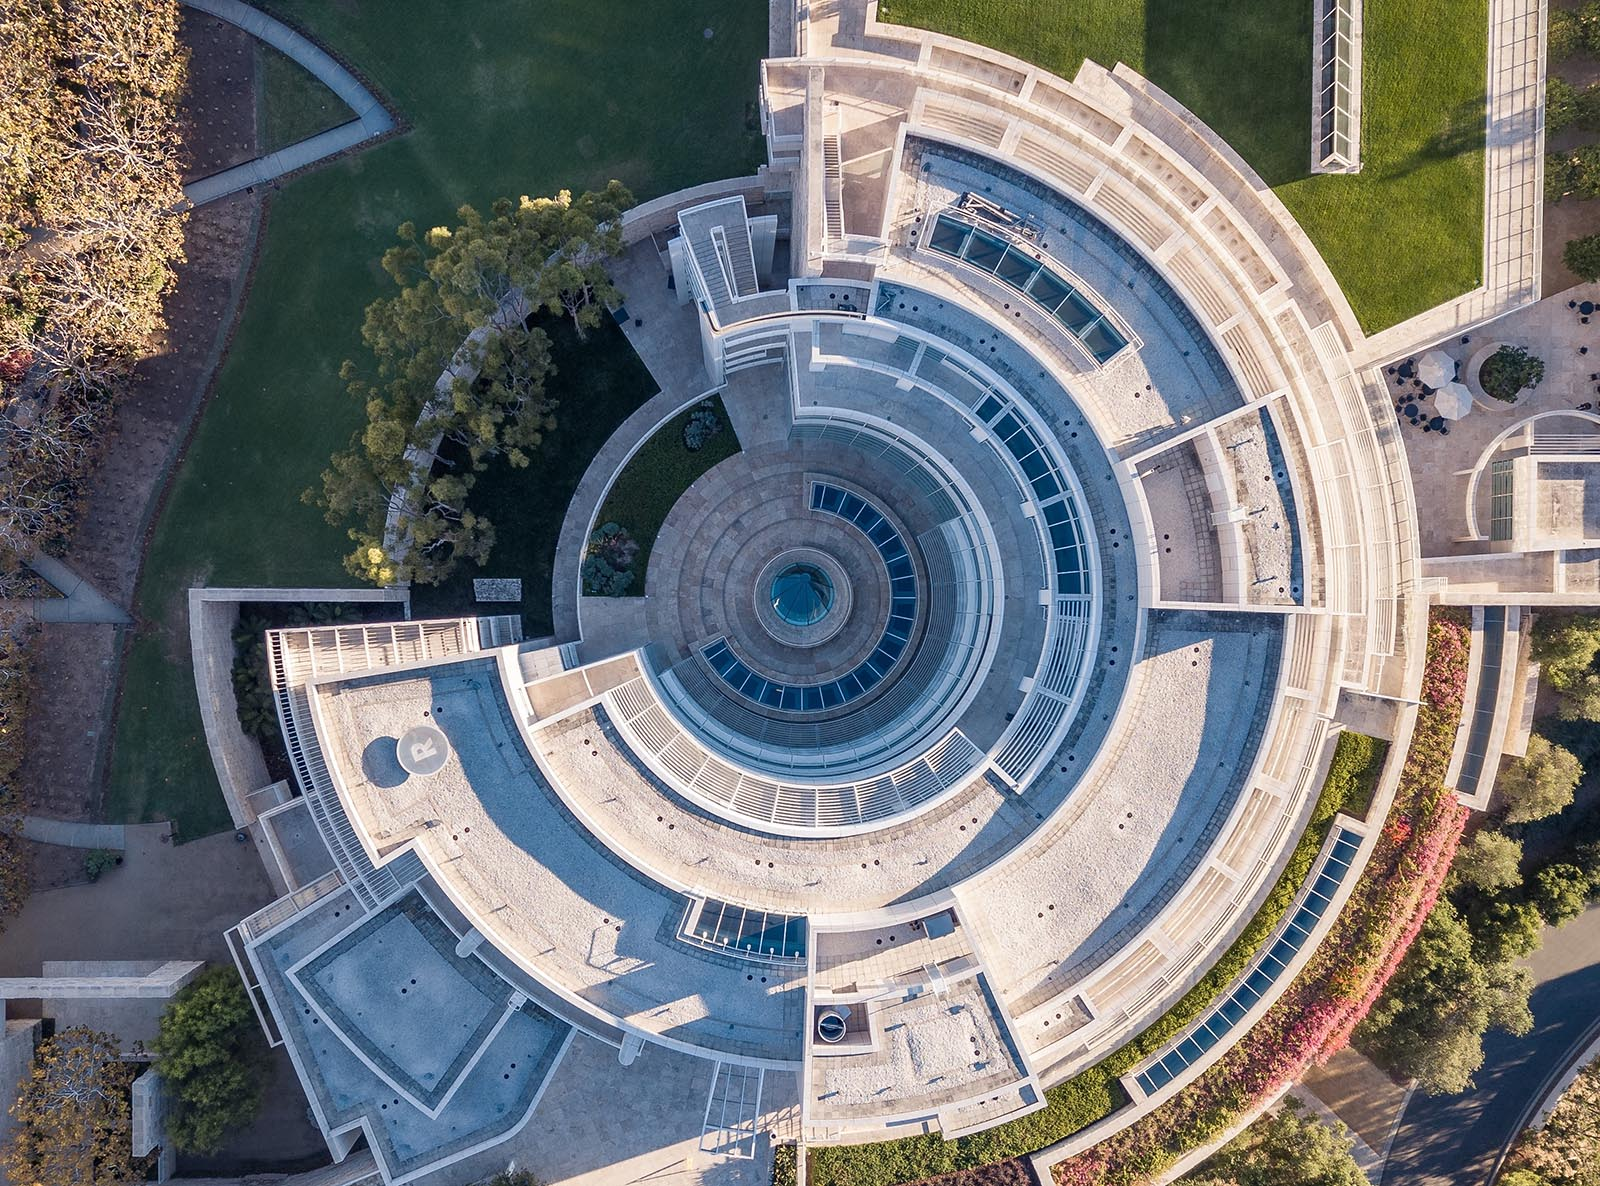 Overhead view of the Getty Research Institute showing the circular shape and many components of the building.